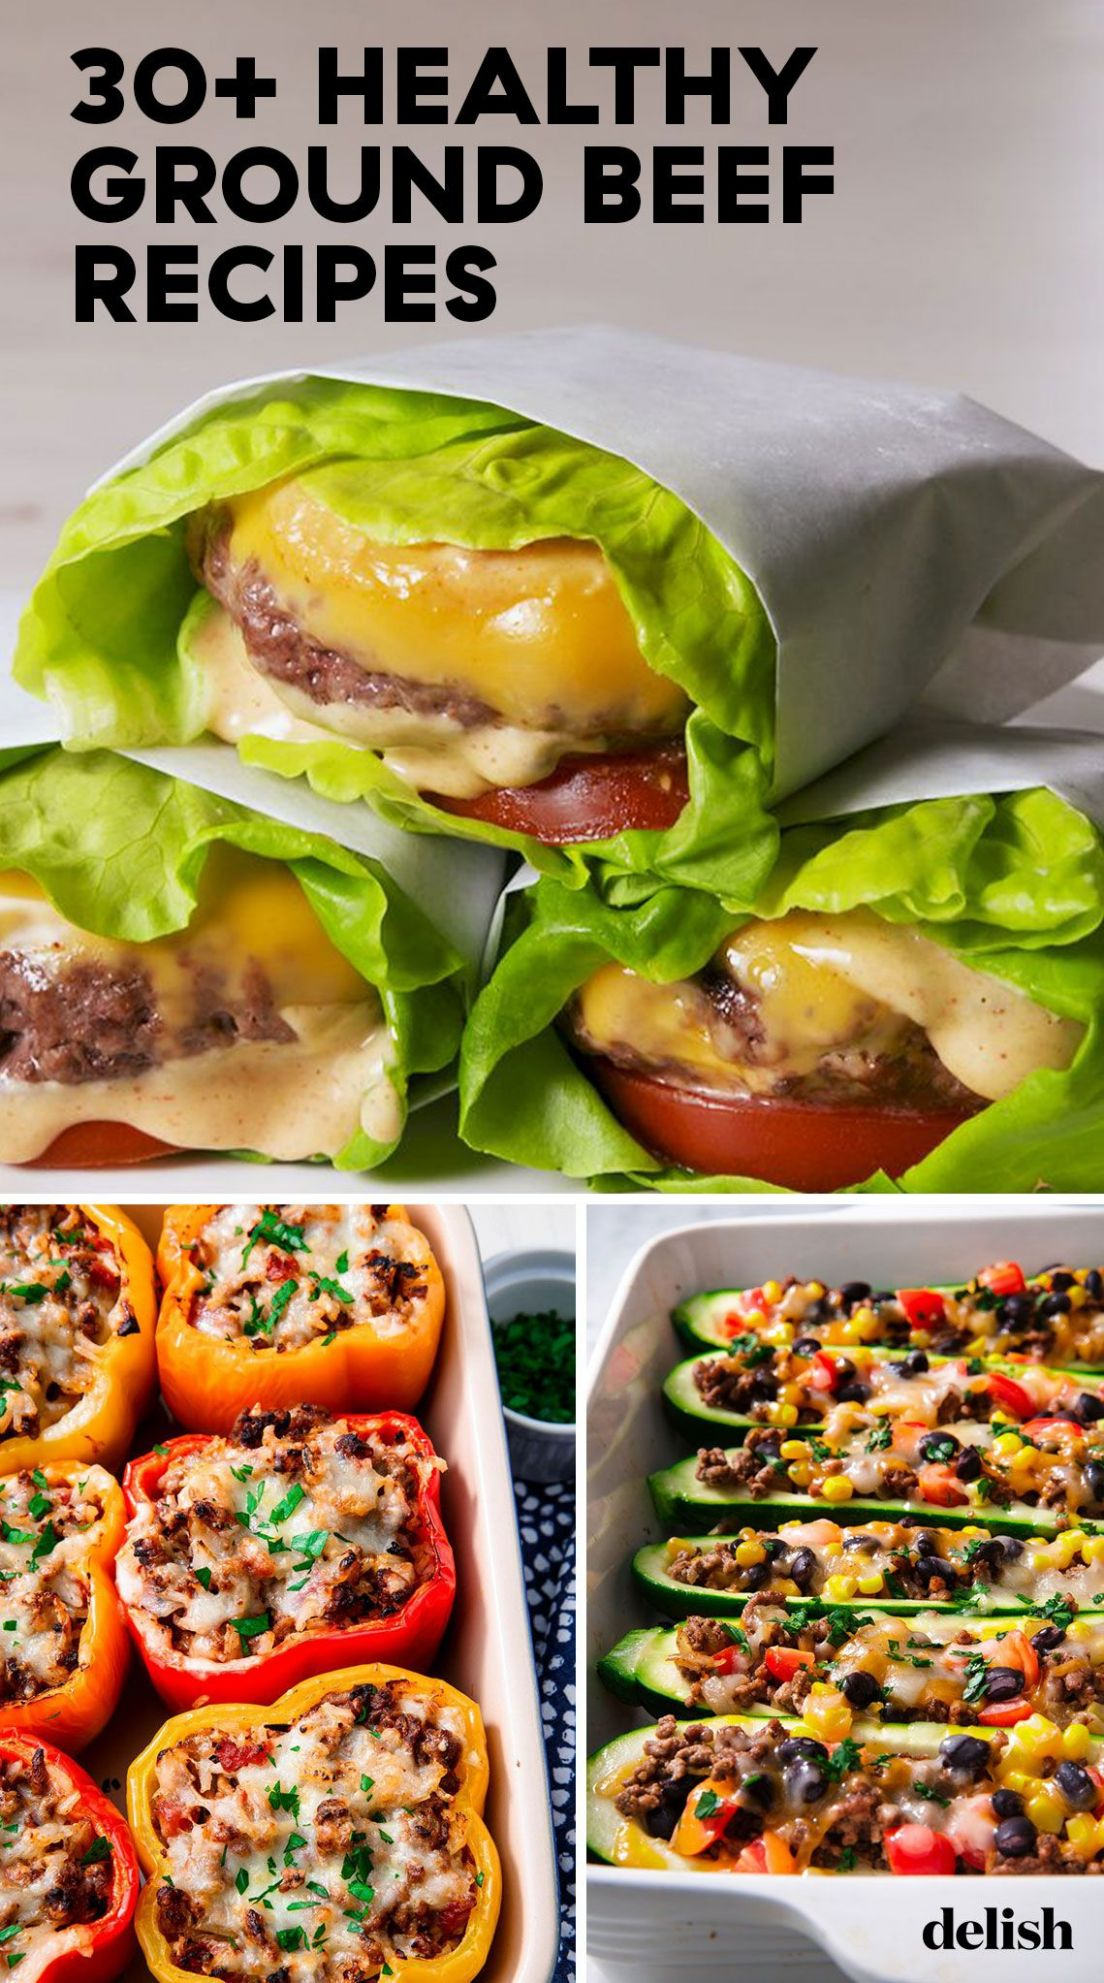 8+ Healthy Ground Beef Recipes - Easy Beef Healthy Ideas You'll Love